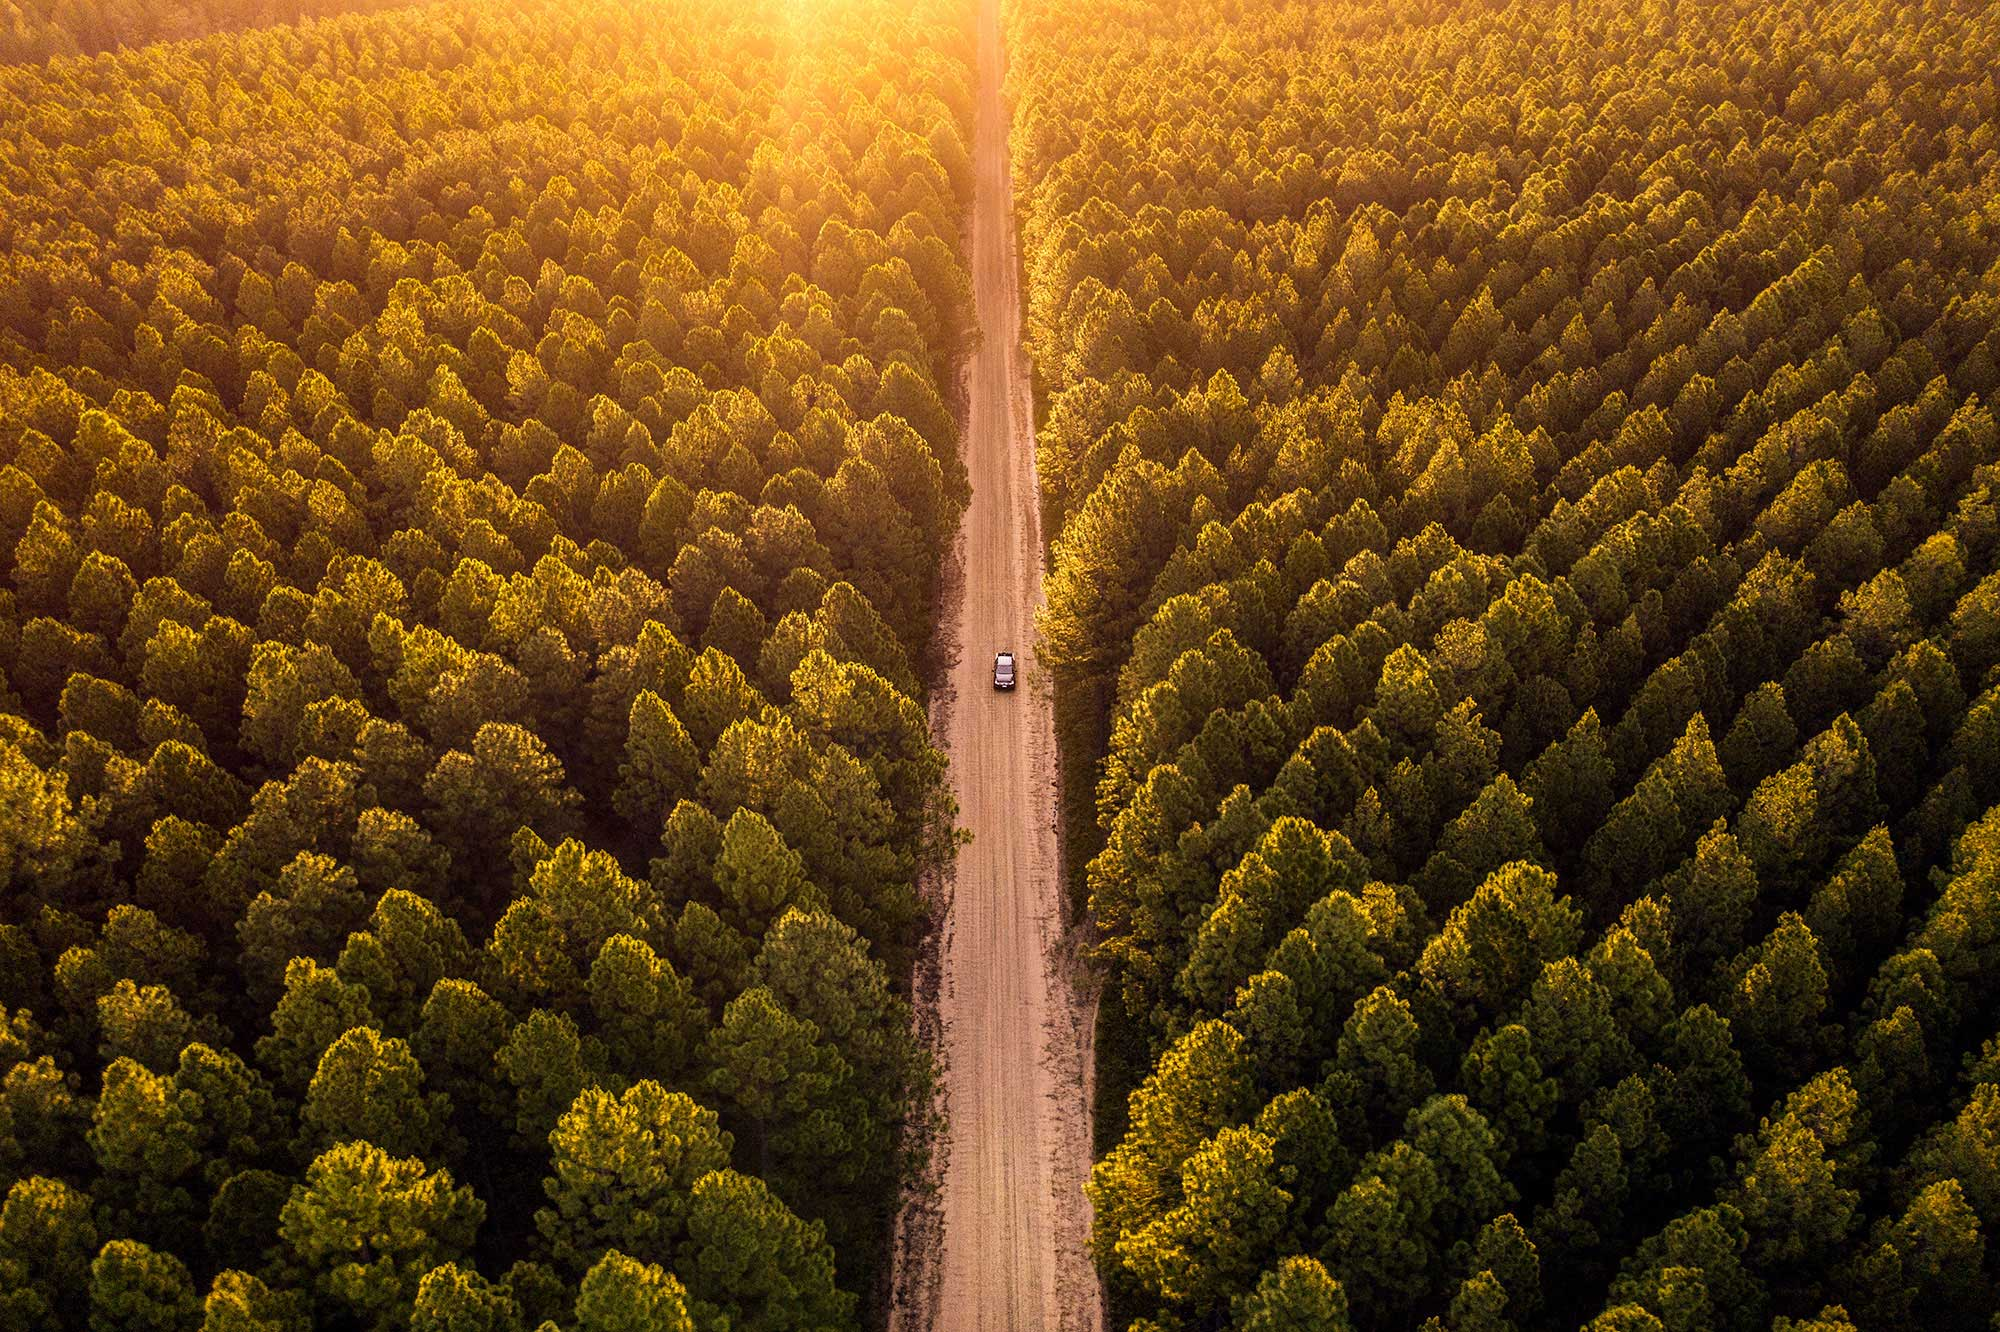 Jeff_Camden_car_drone_forest_2